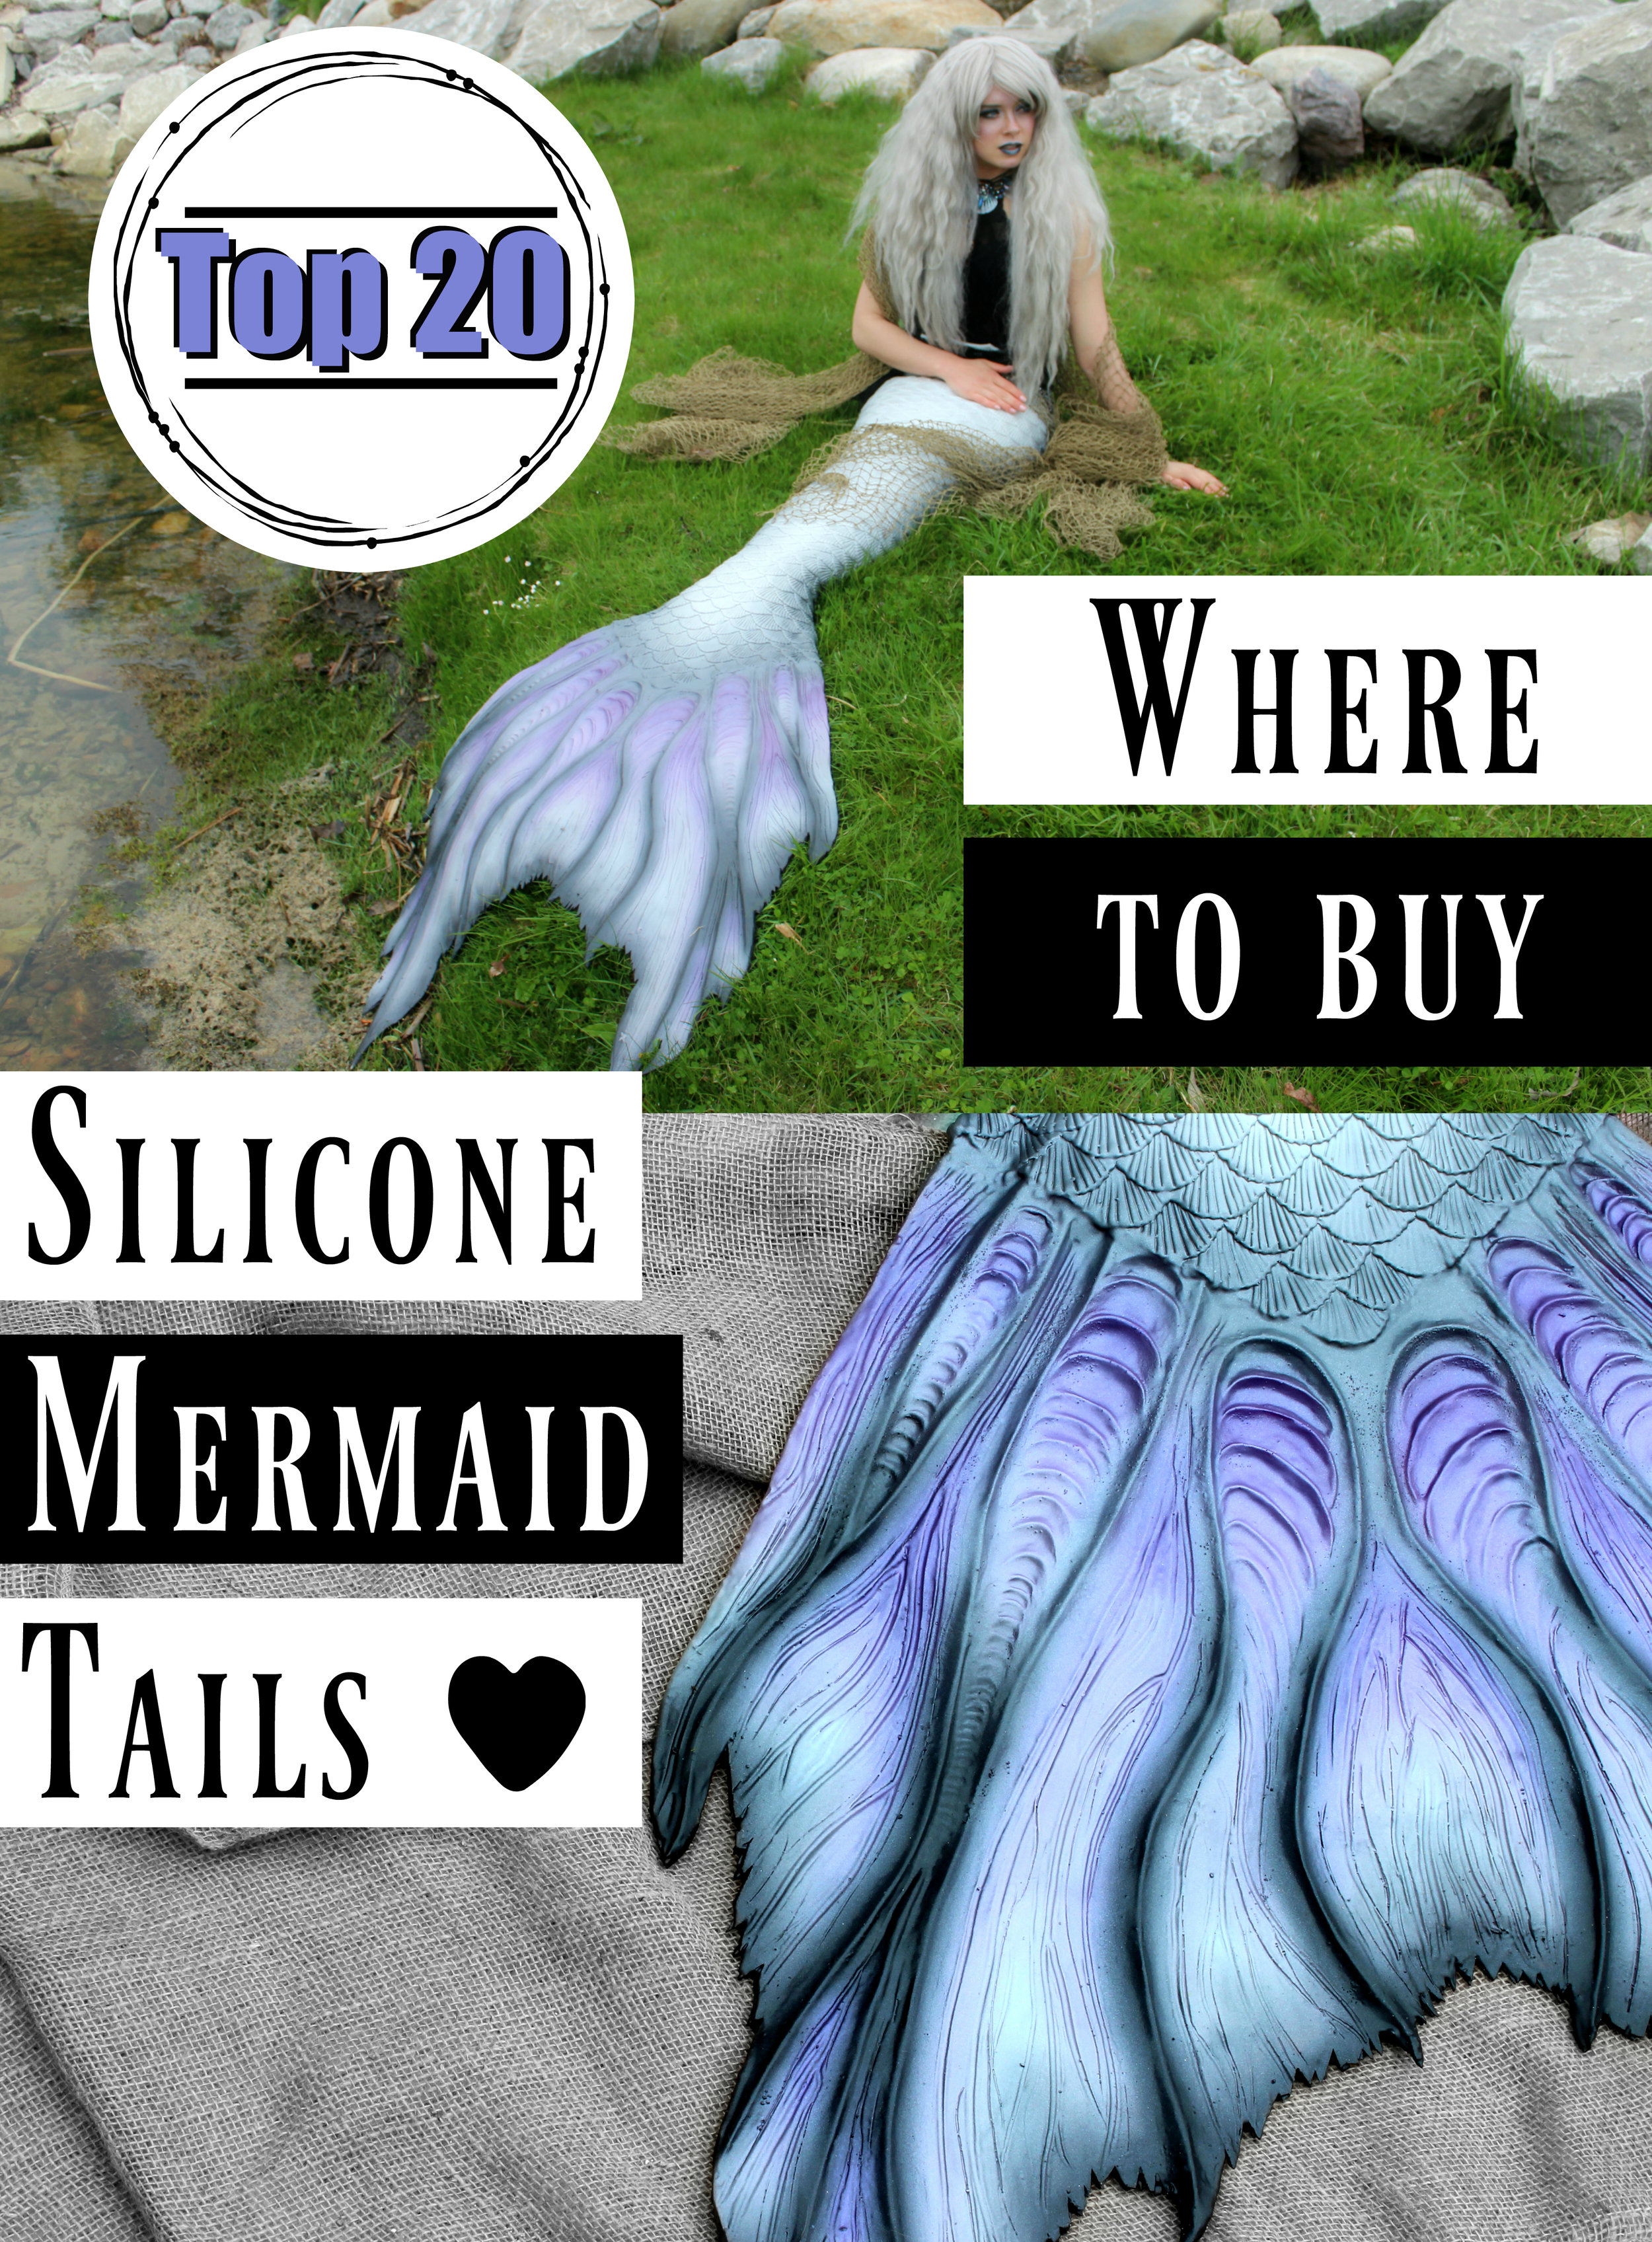 Silicone Mermaid Tails for Adults: Where to Buy Silicone Mermaid Tails Online for Professional Mermaids! Where is the best place to buy silicone mermaid tails? Here are 20 of my FAVORITE places to find silicone mermaid tails for sale.